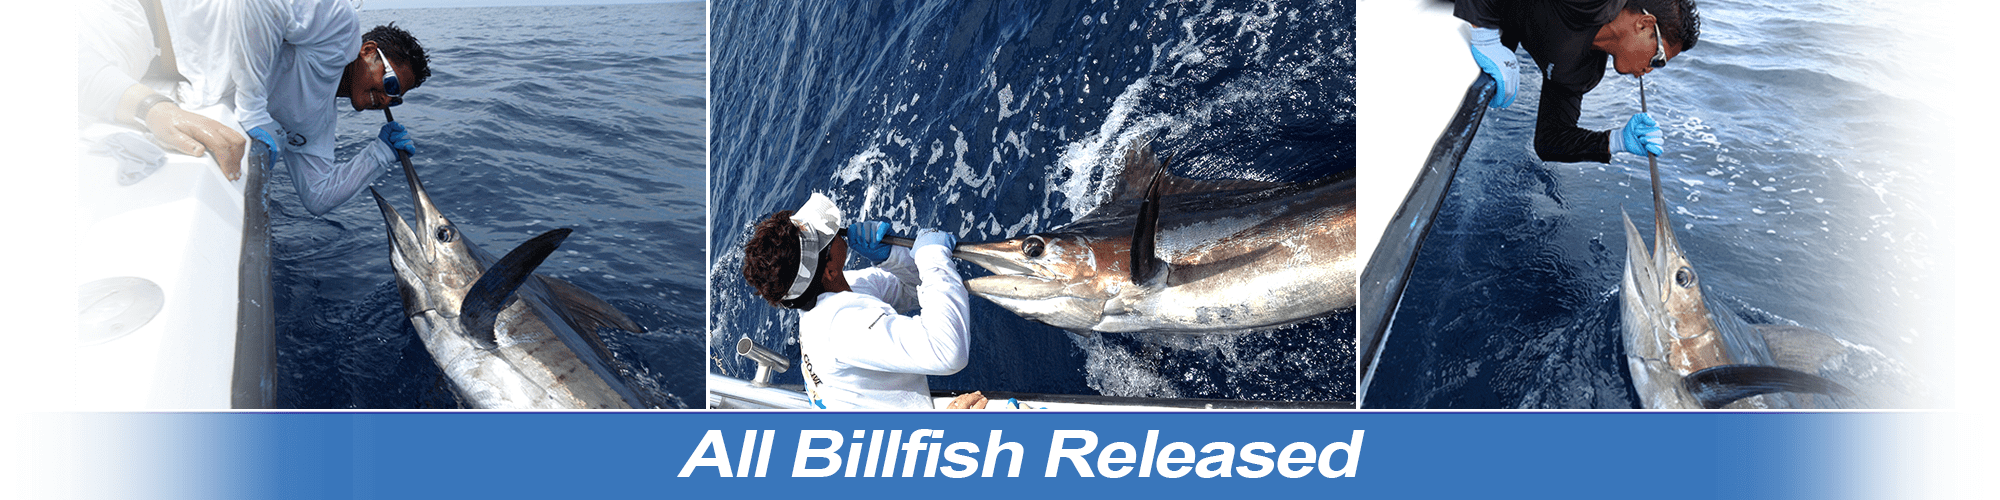 All Billfish Released